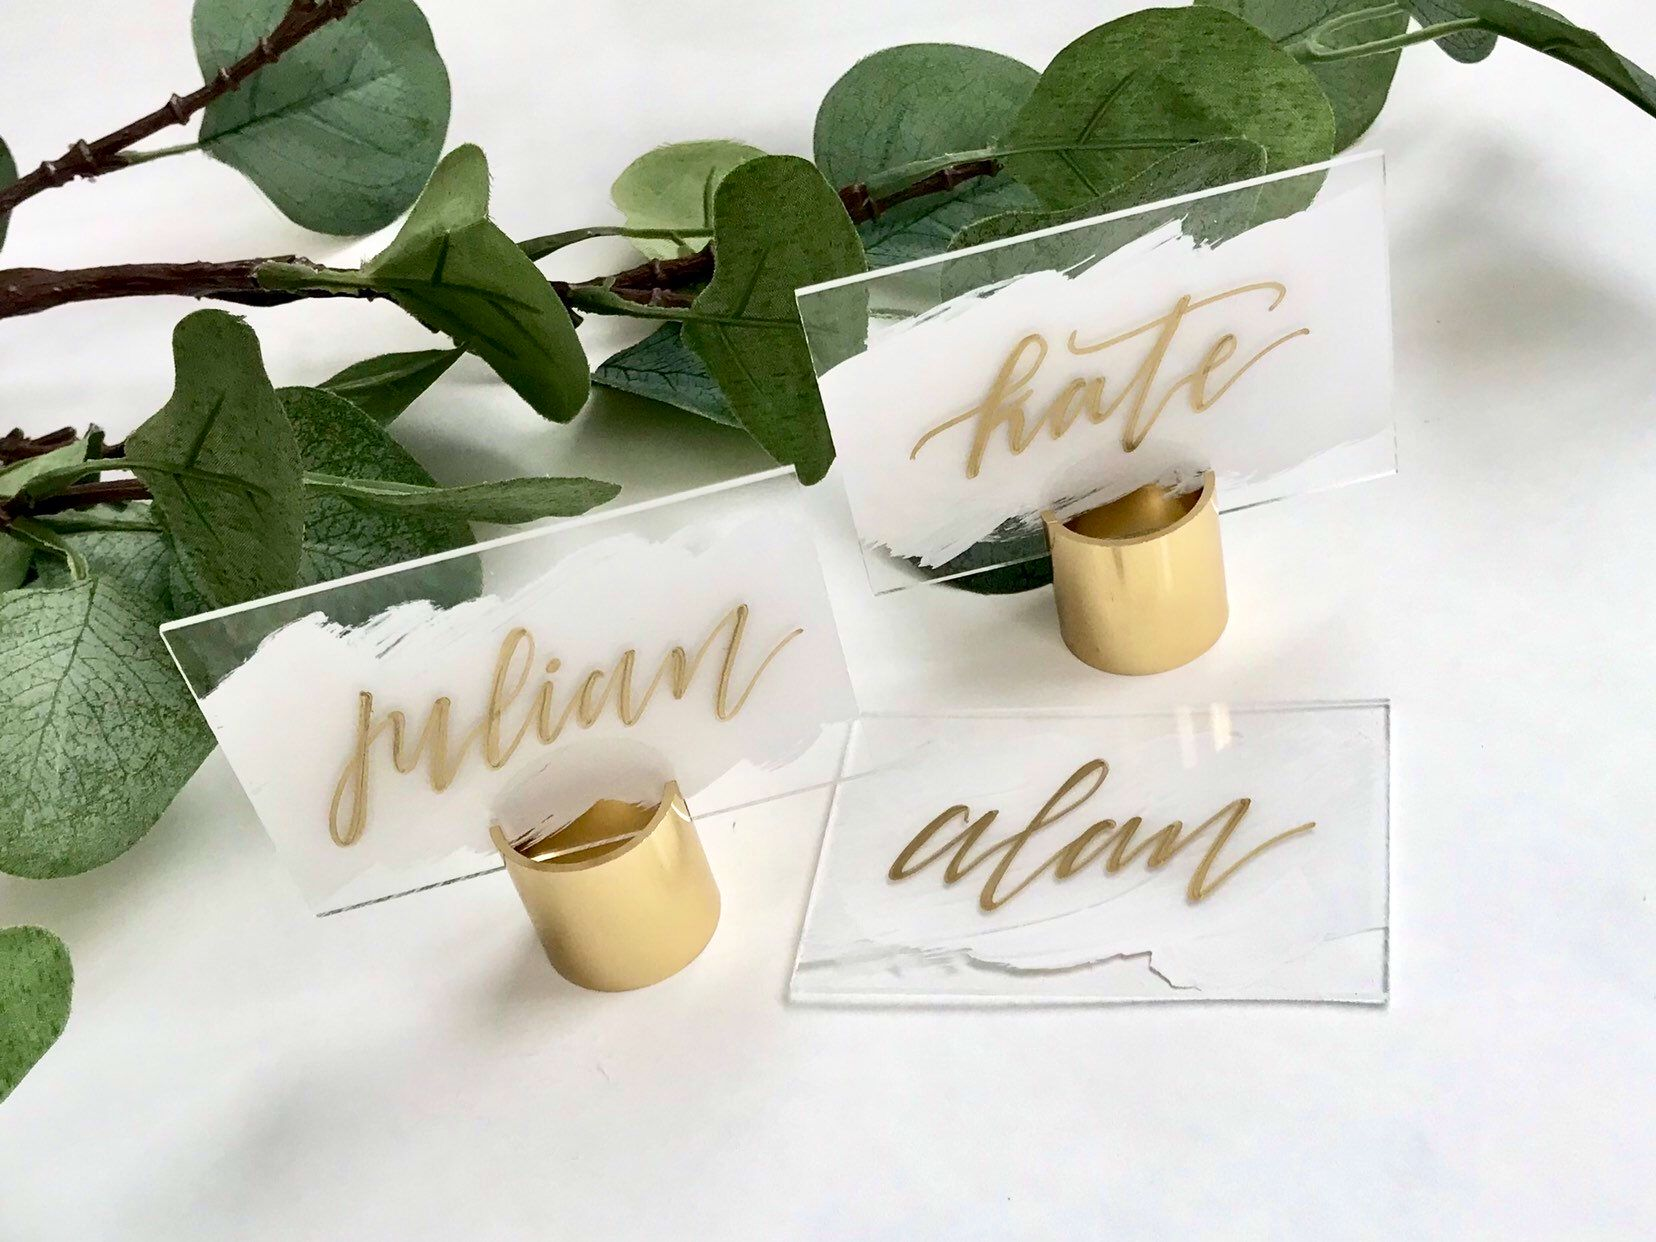 Acrylic Brush Stroke Place Cards Wedding Name Card Seating Signs Wedding Name Plates Event Weddin Wedding Name Cards Wedding Place Cards Wedding Cards